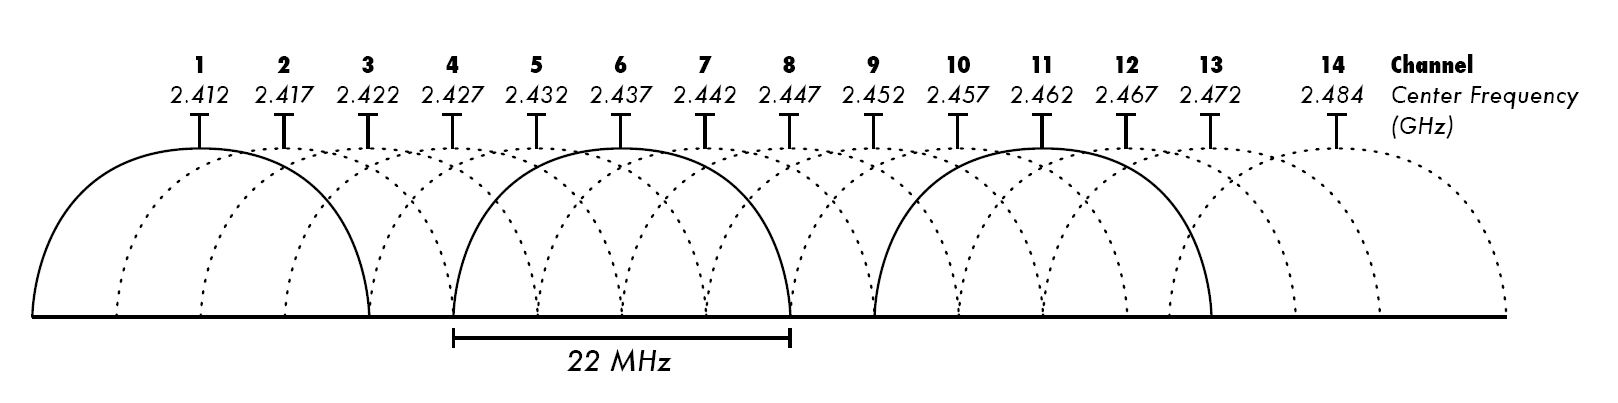 2.4_GHz_Wi-Fi_channels_(802.11b,g_WLAN).